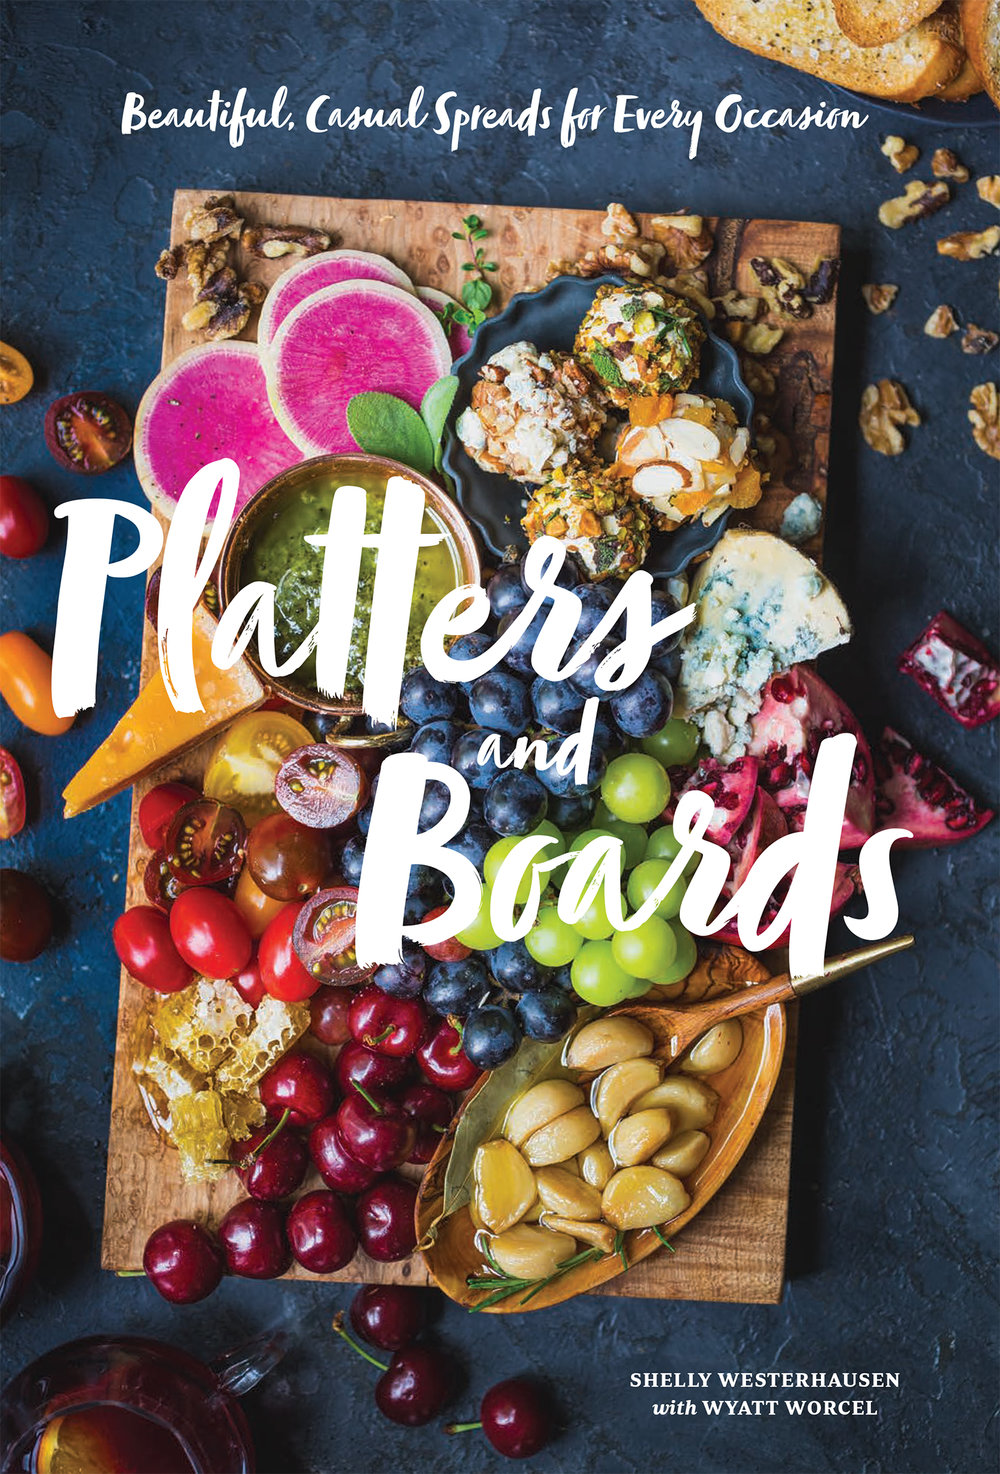 PLATTERS AND BOARDS.jpg